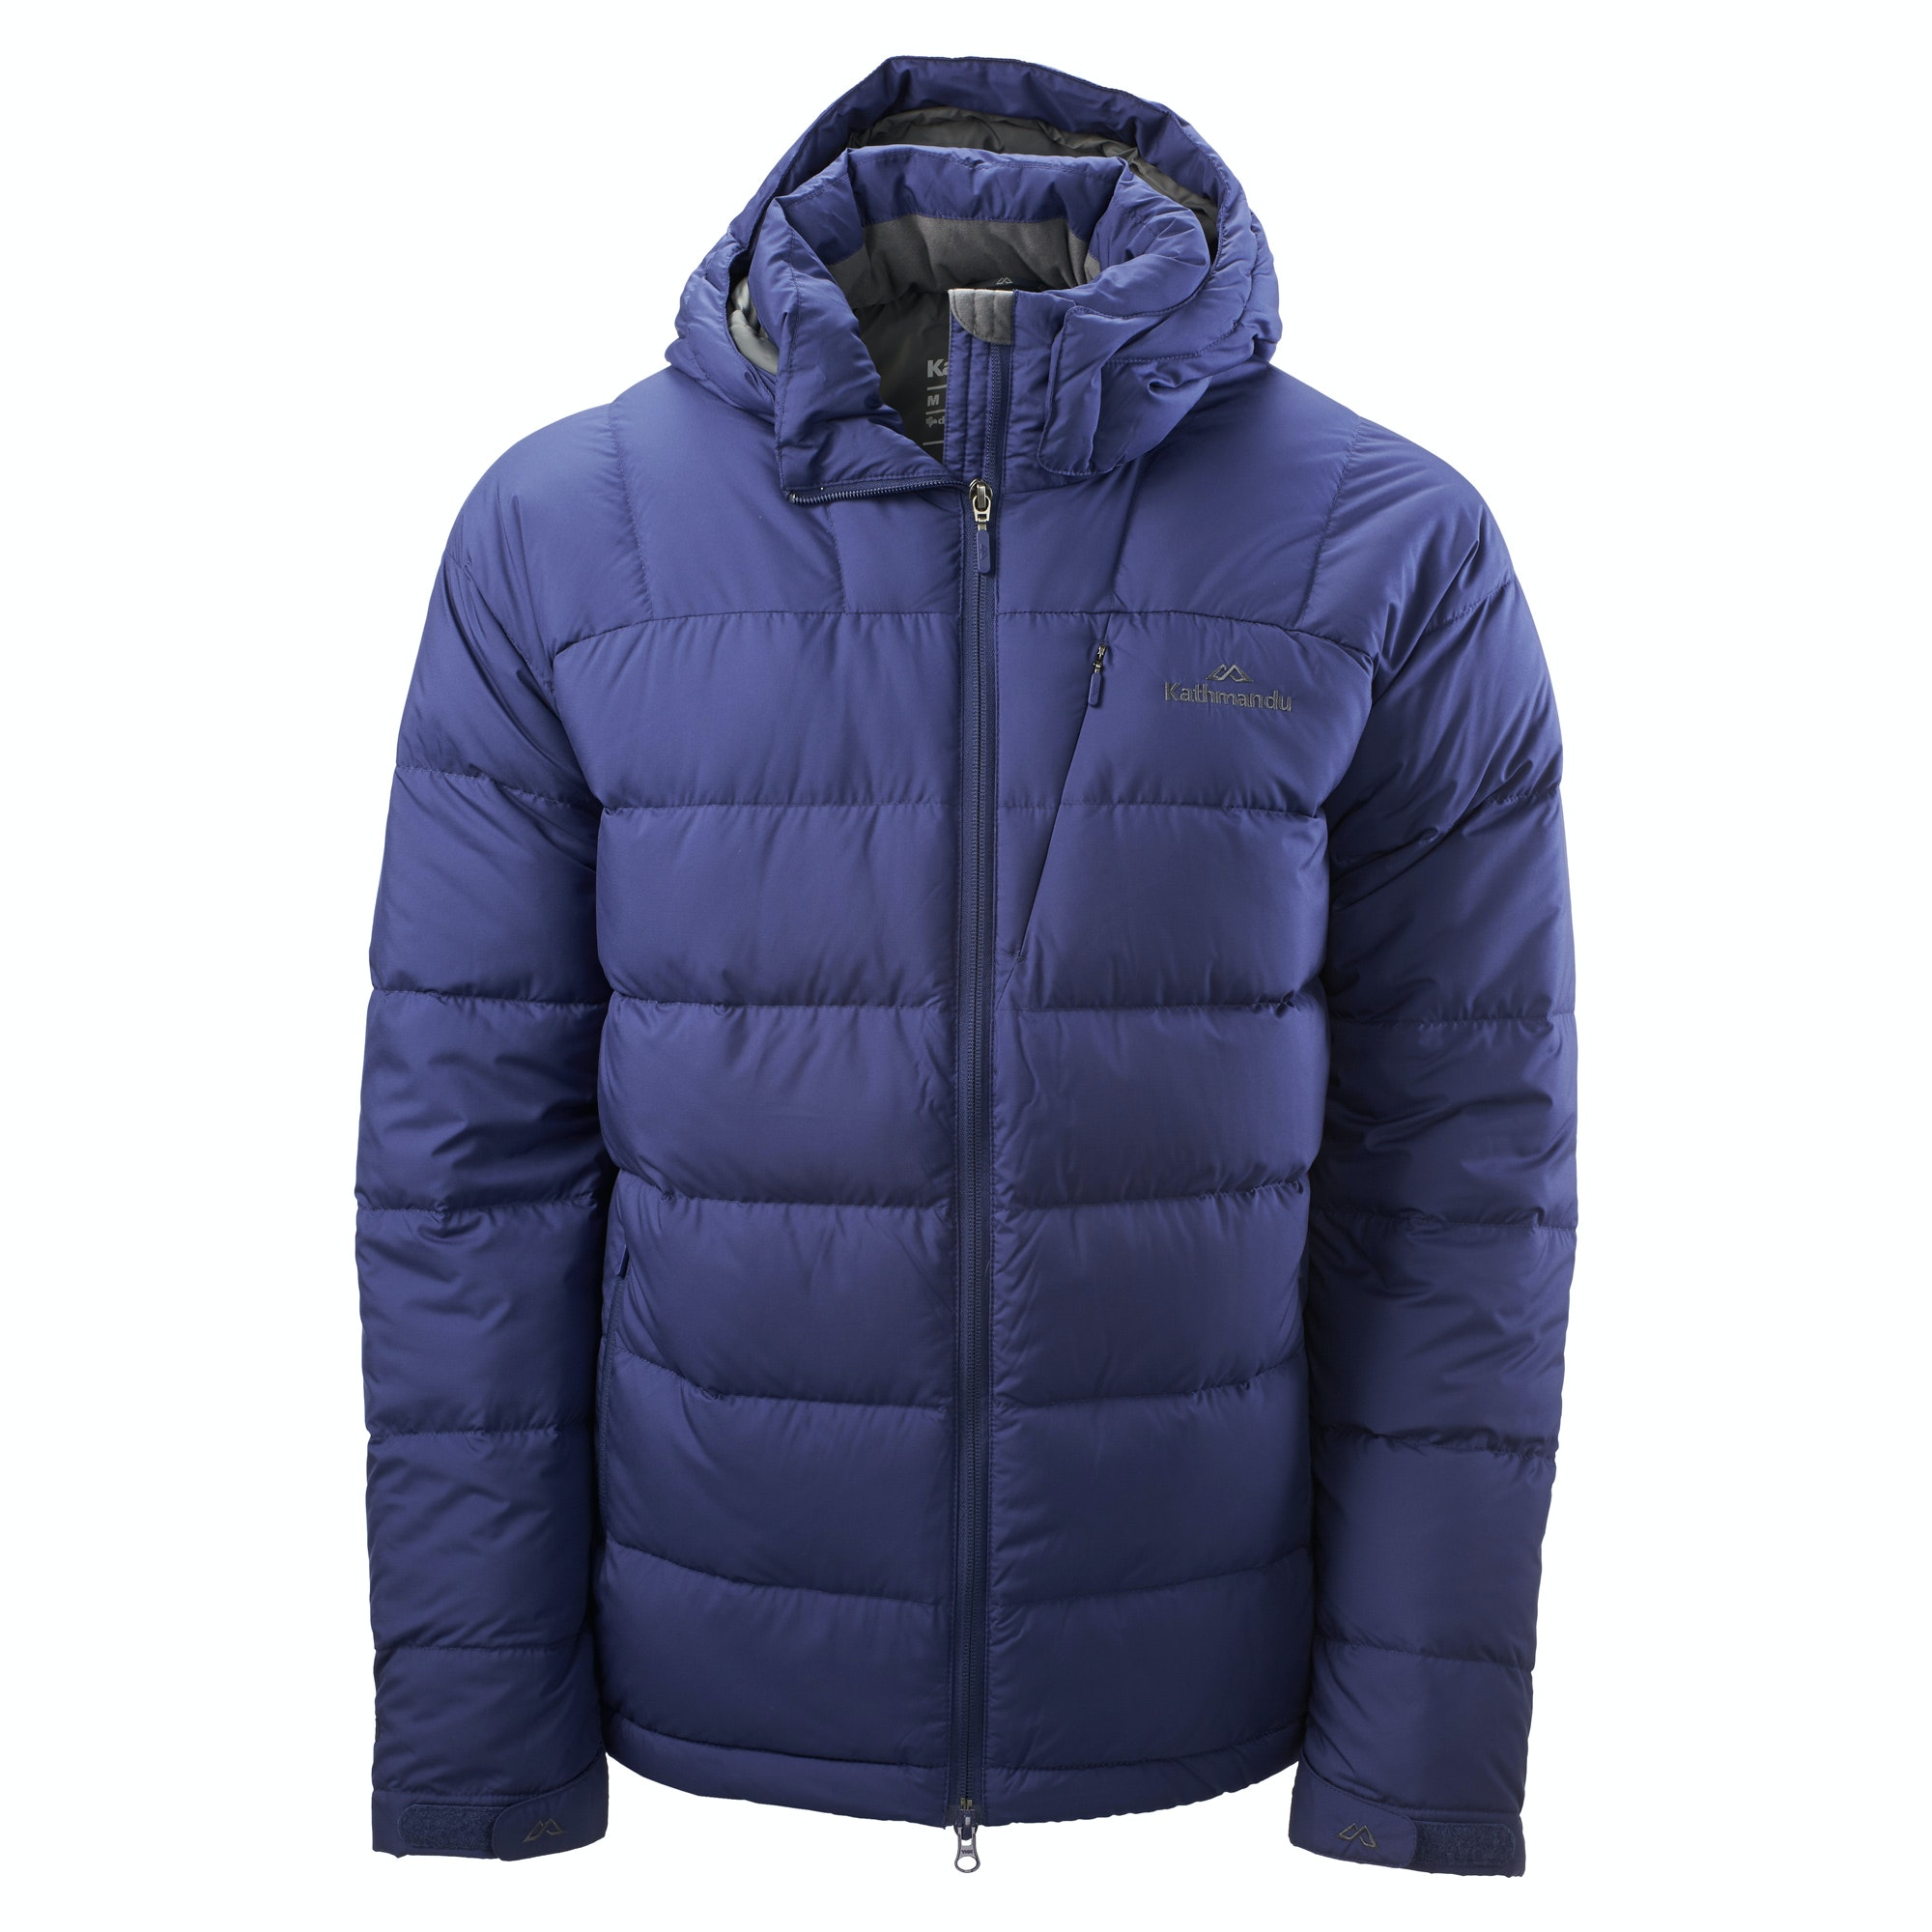 A packable down jacket is a staple for those traveling in winter weather. Down is exceptional at providing warmth in cold air and compressing into luggage. A packable down jacket is a staple for those traveling in winter weather. Down is exceptional at providing warmth in .